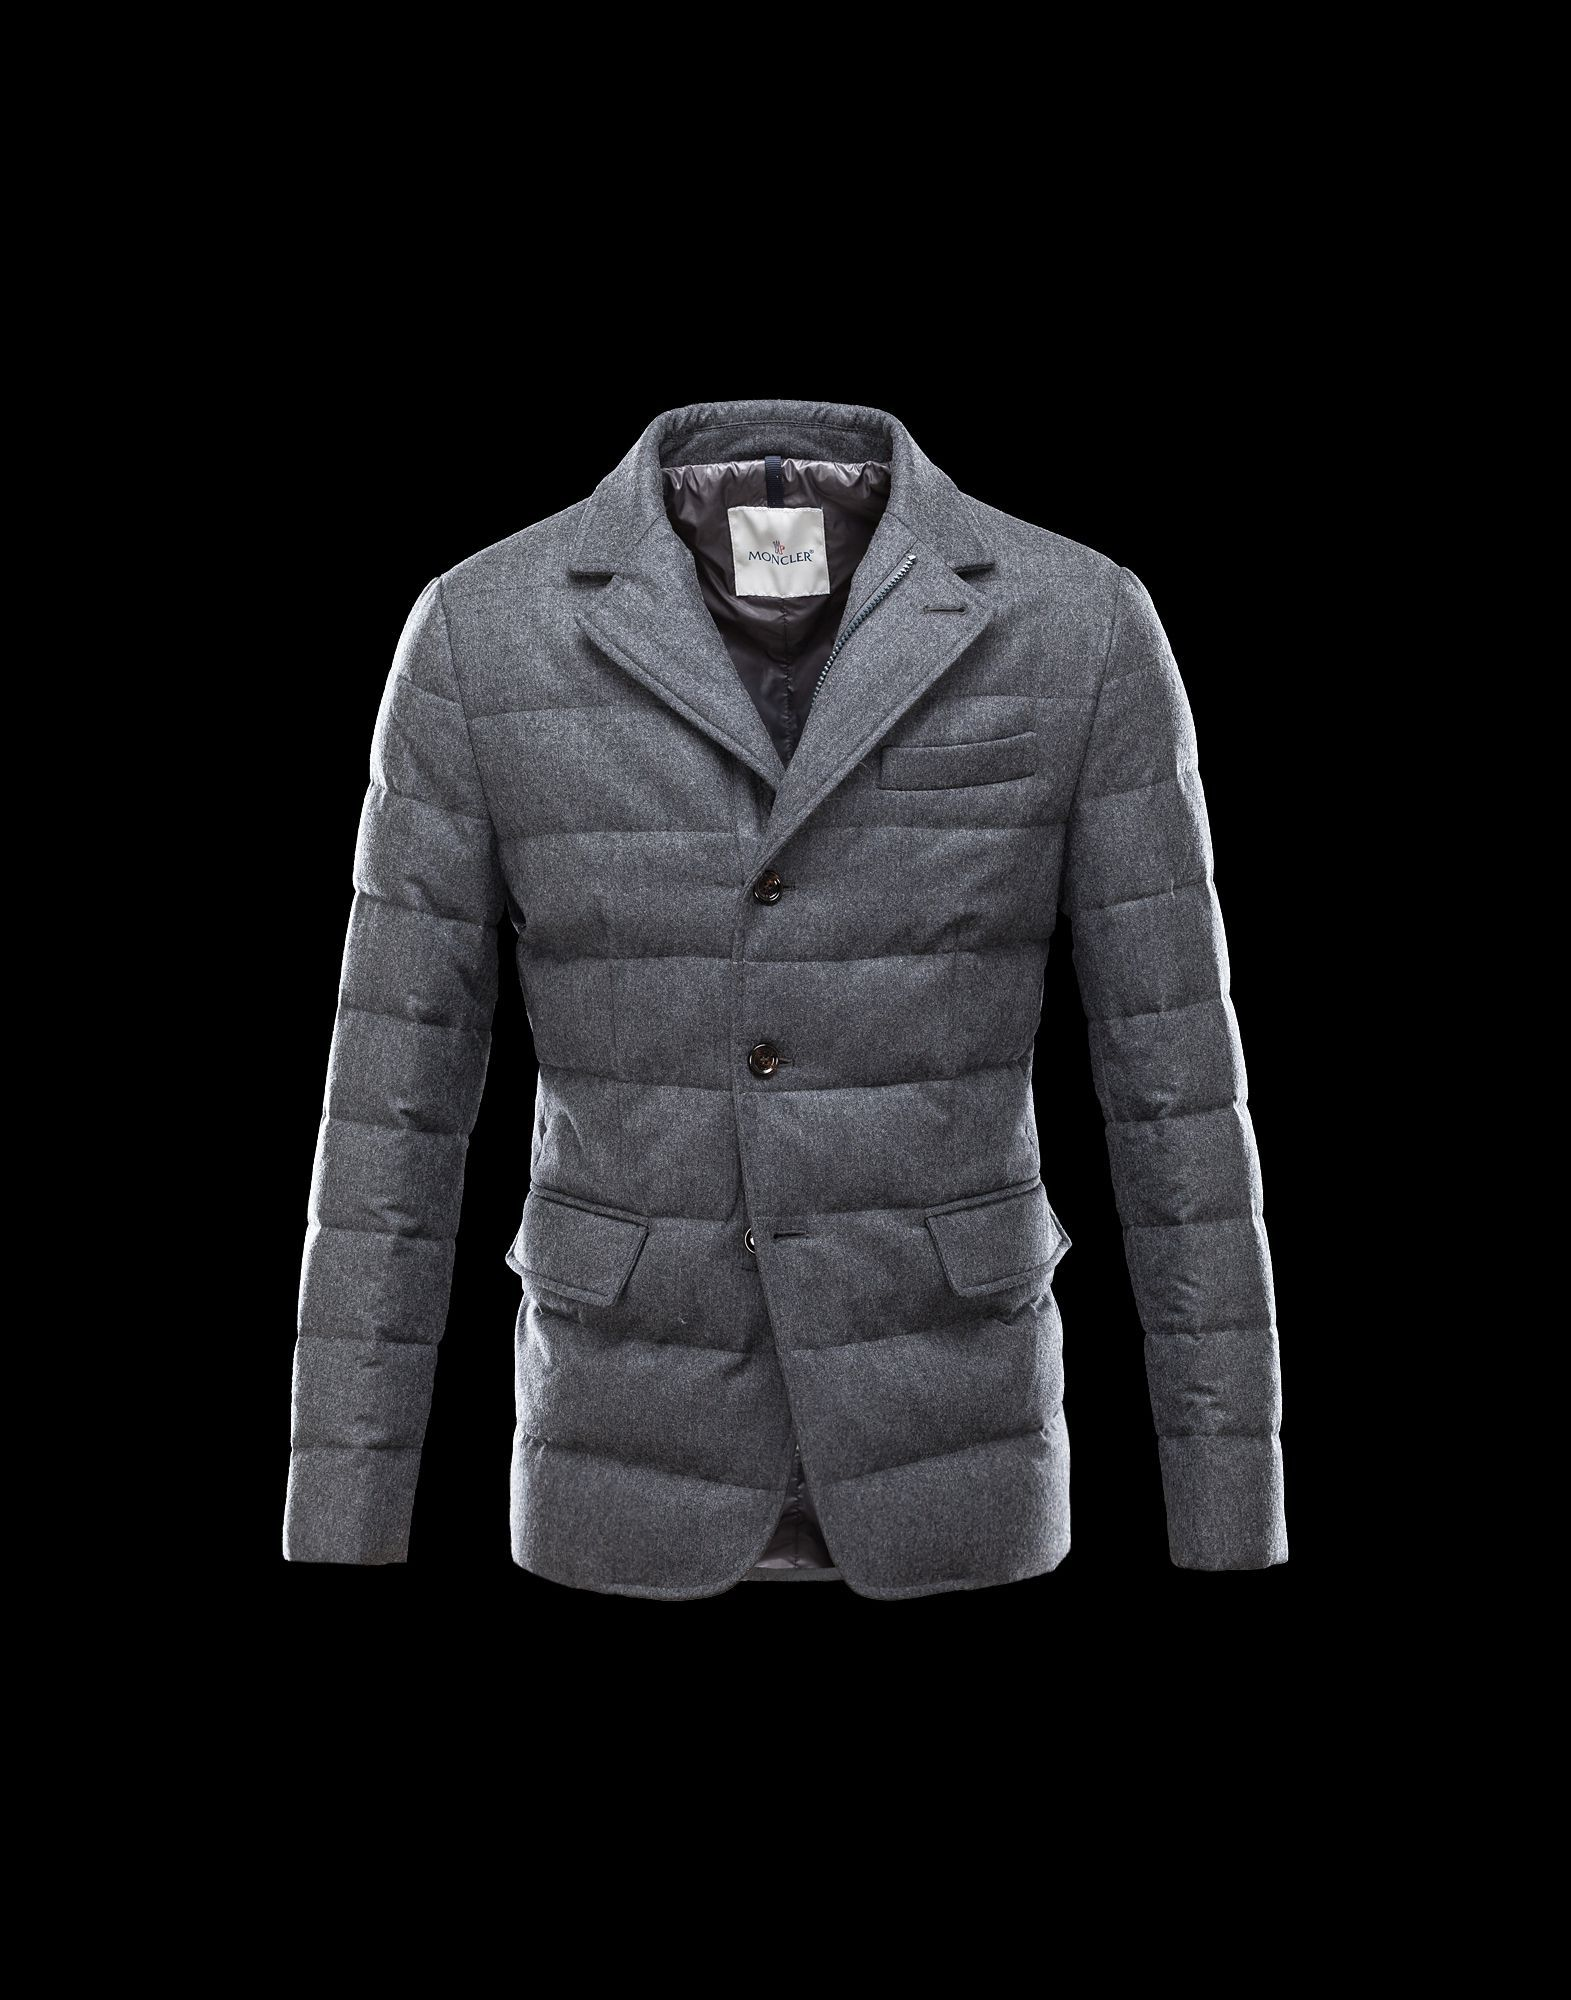 Grey flannel jacket  Jacket Men  Outerwear Men on Moncler Online Store  Guy stuff